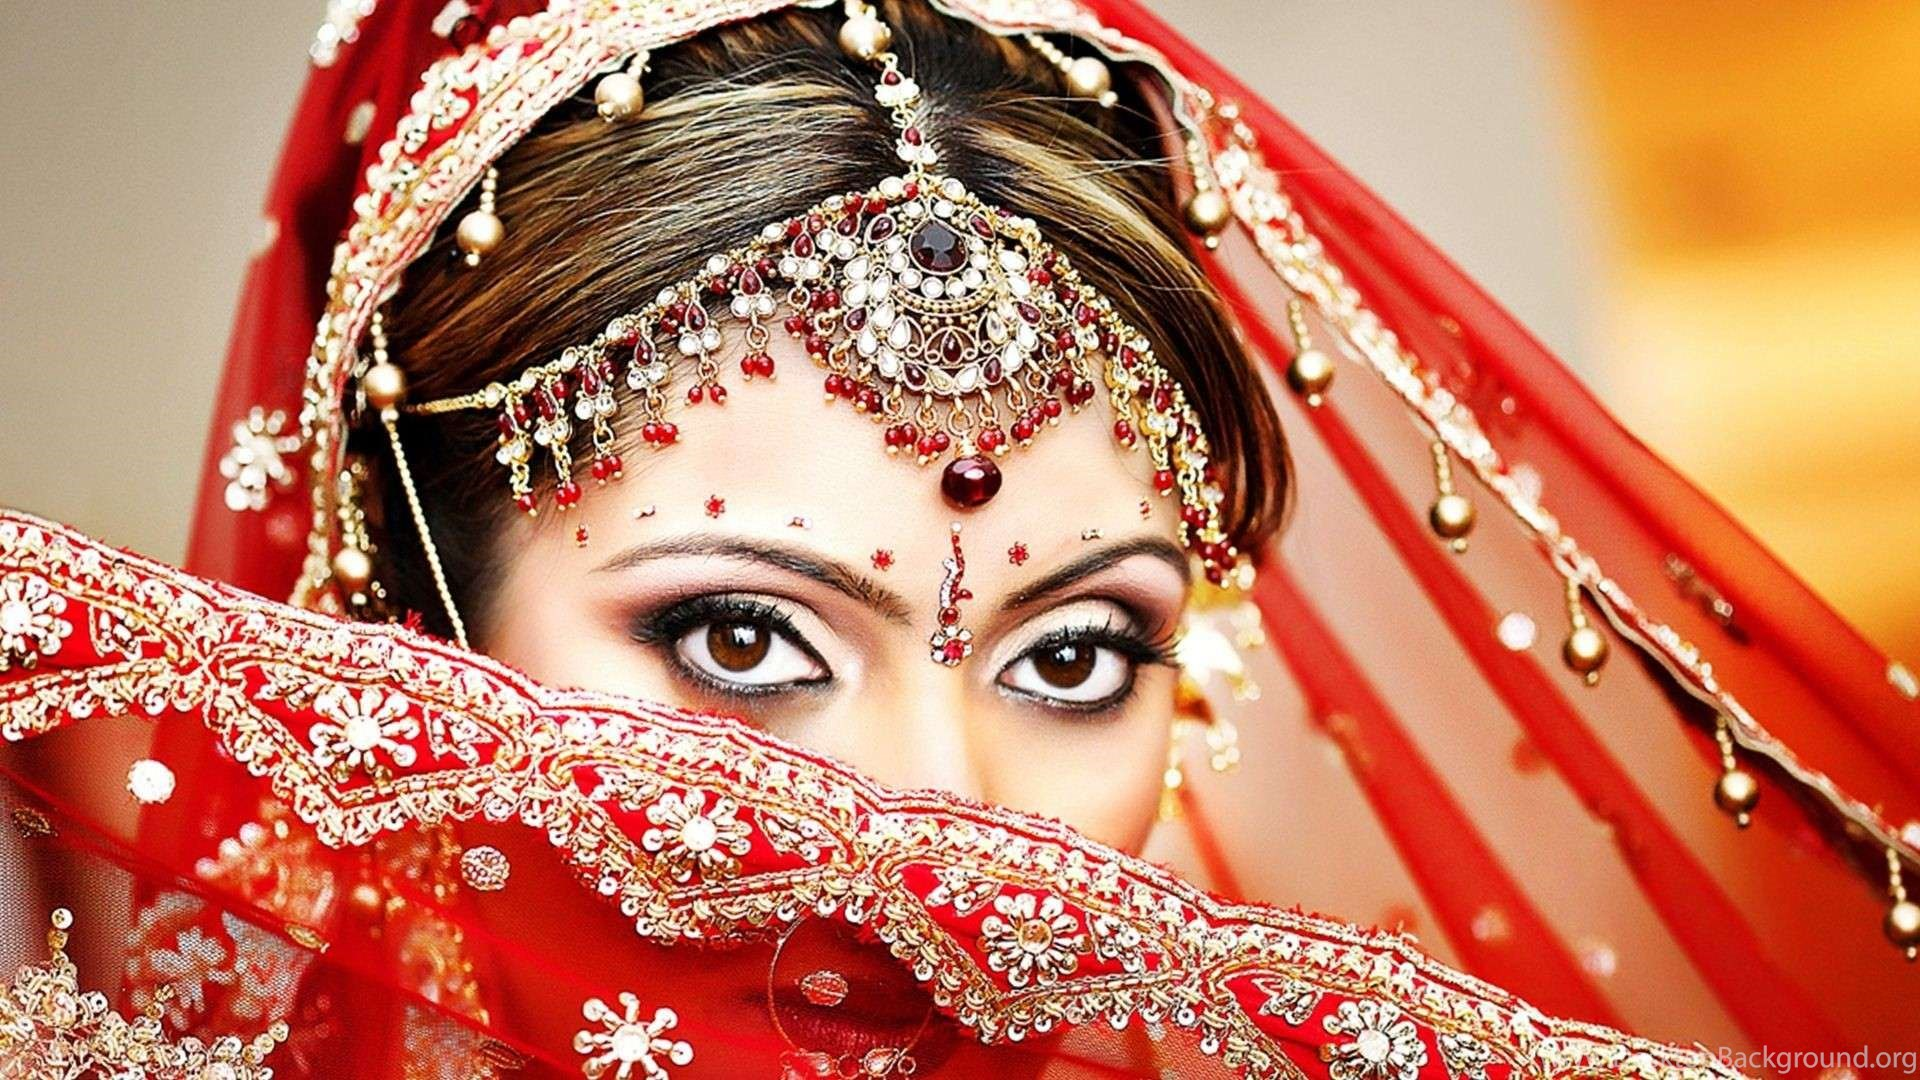 indian brides hd wallpapers of indian bride makeup & dress desktop